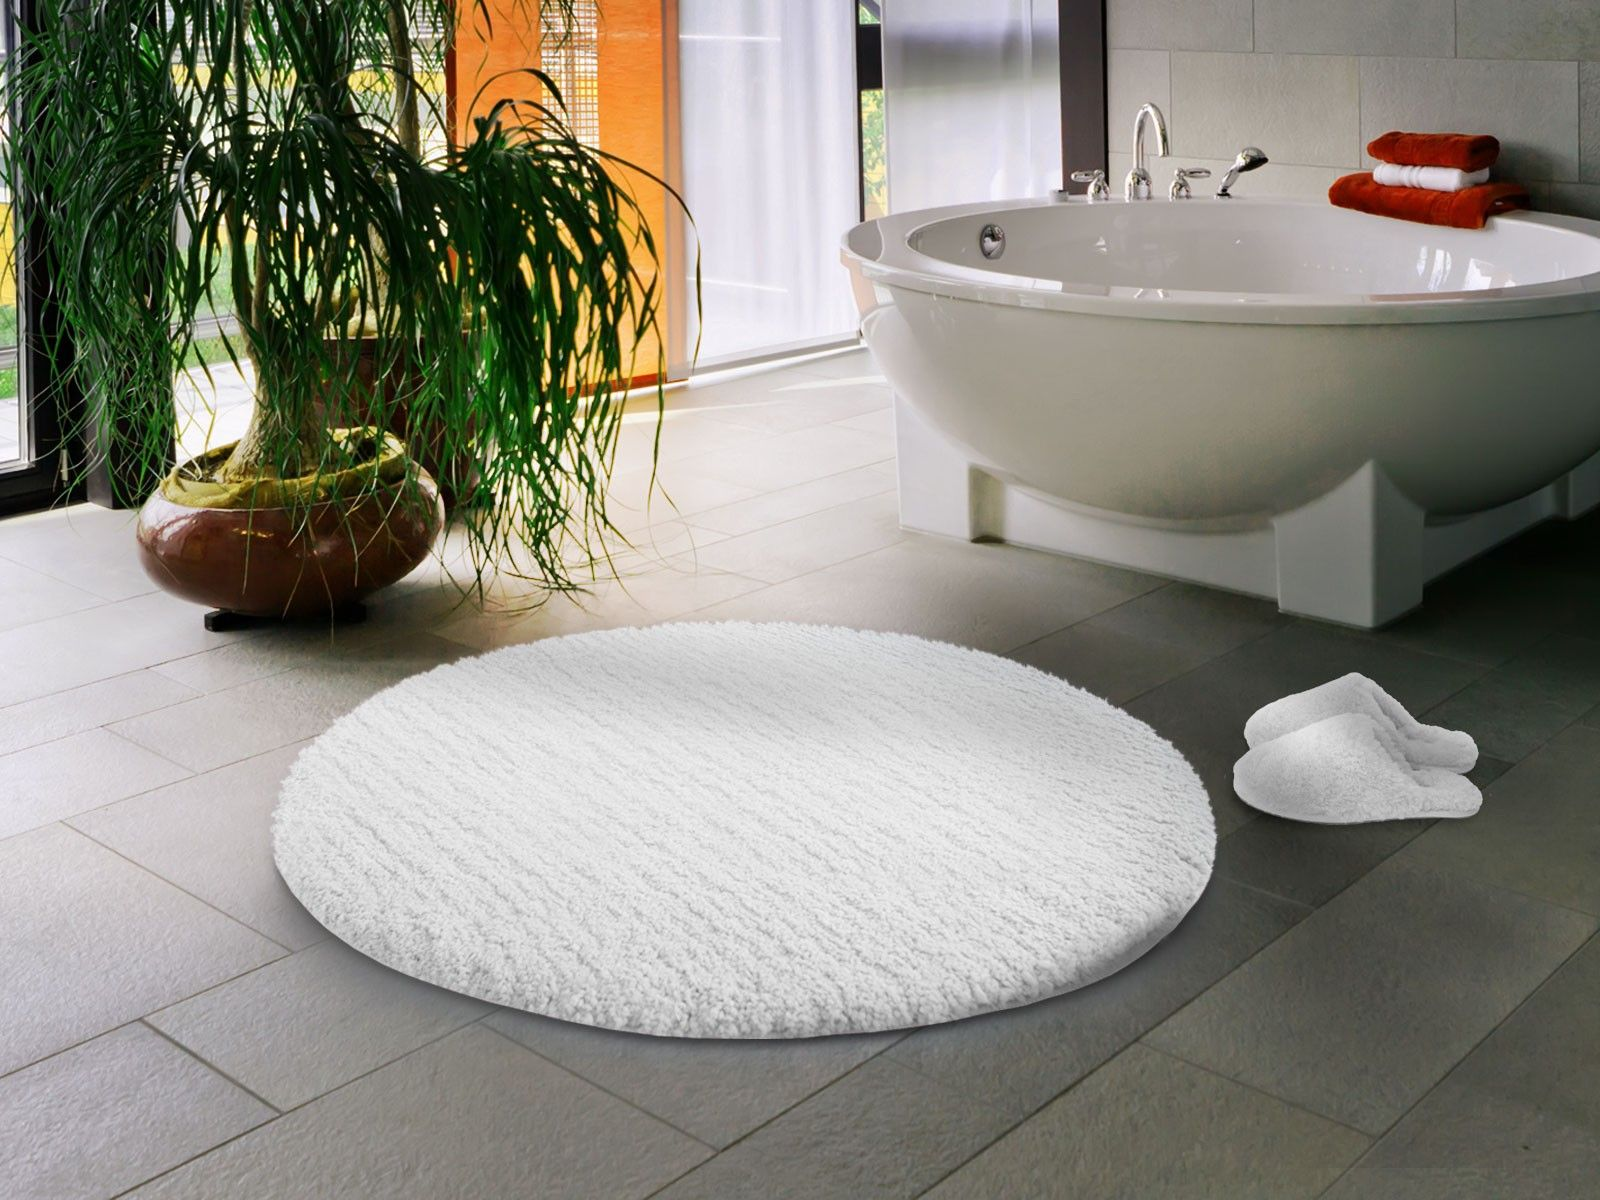 My Saves Alfa Anju Pinterest Bath Rugs And Bath - White bath runner for bathroom decorating ideas